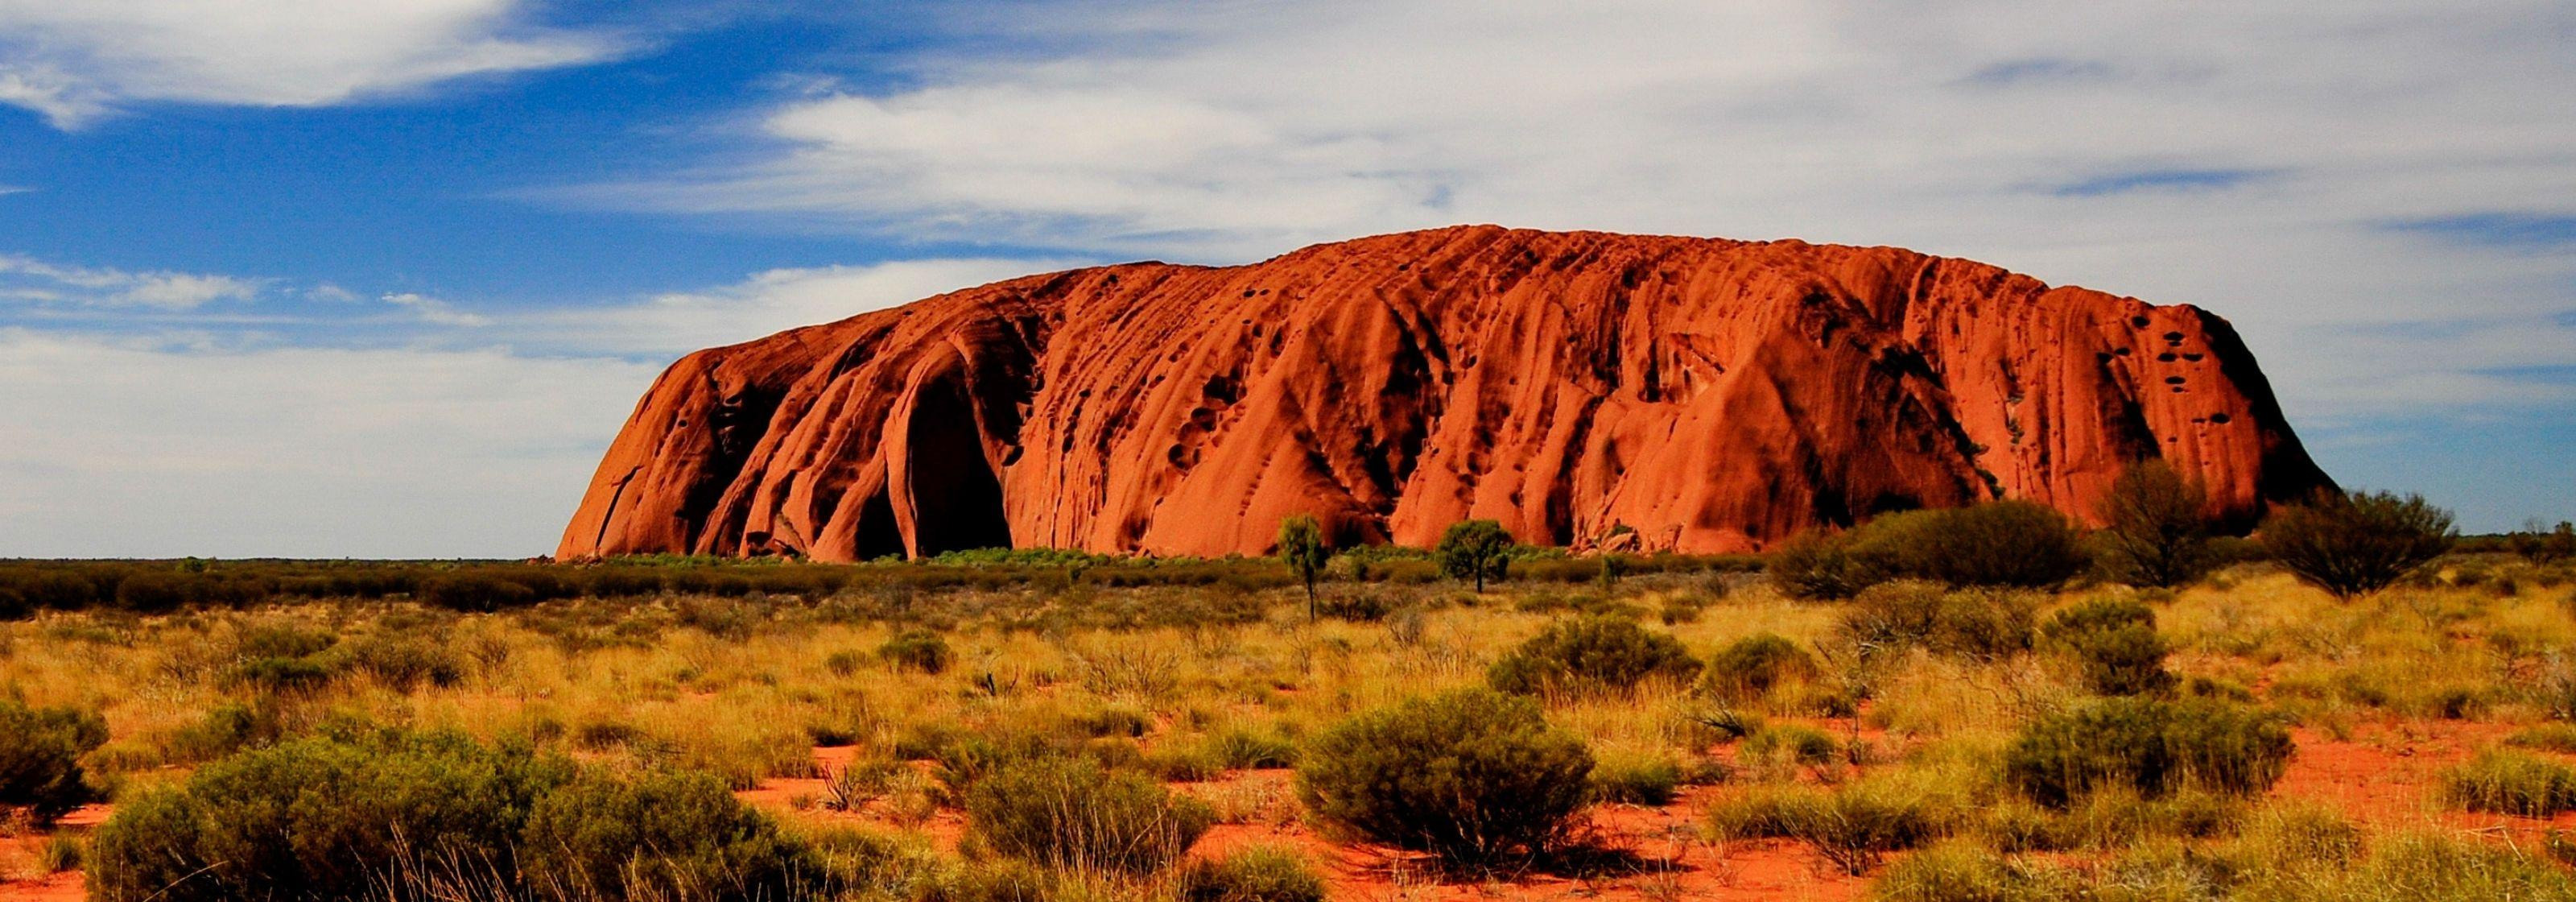 Things to do in Ayers Rock